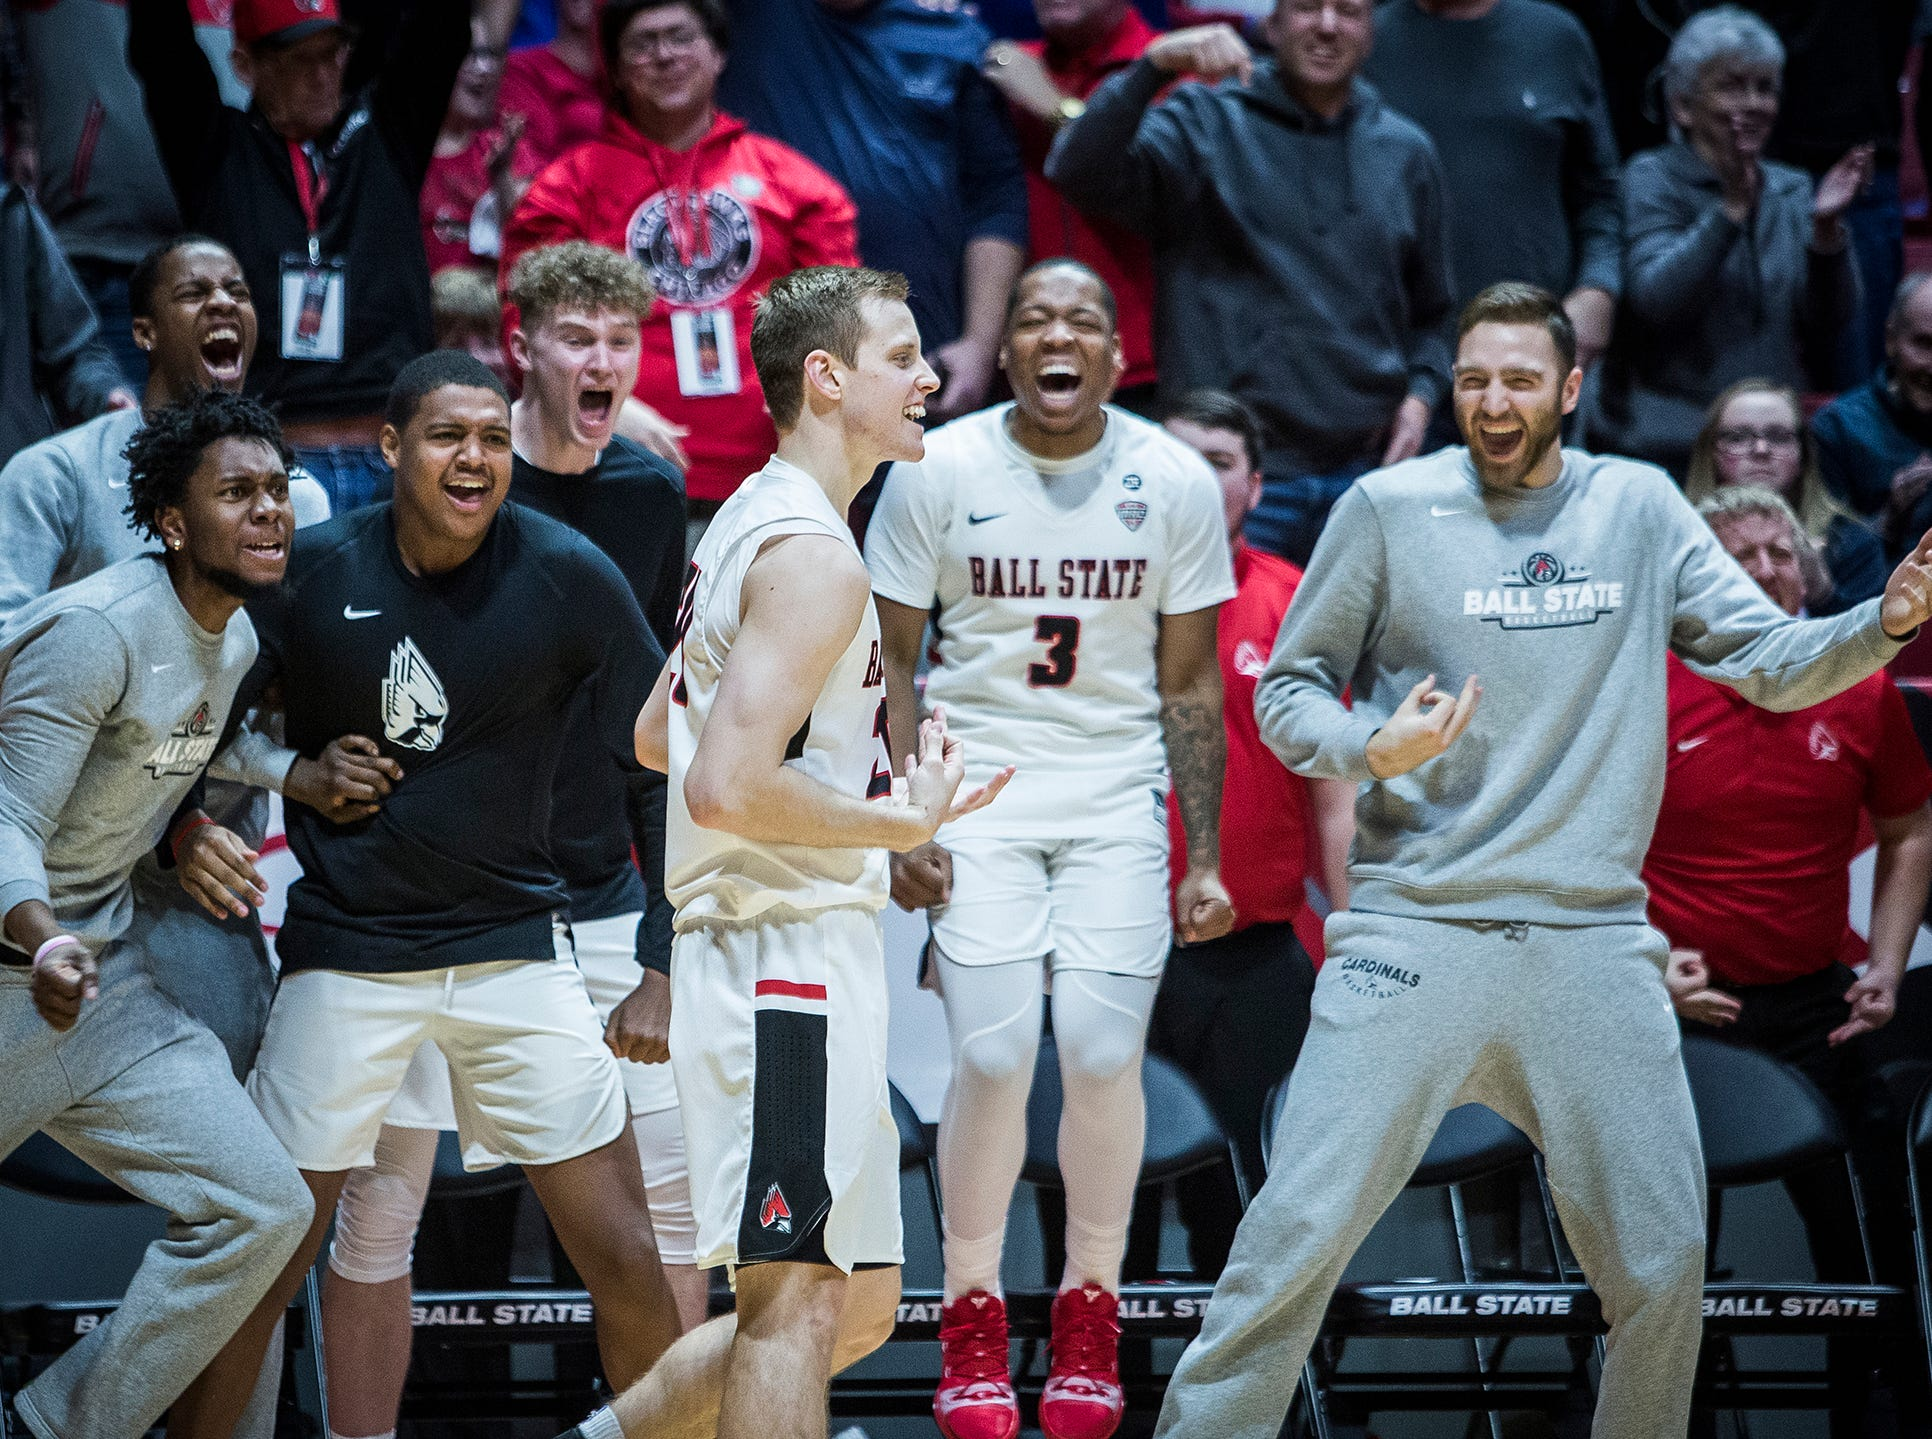 Ball State's Austin Nehls makes a three-pointer against Eastern Michigan's defense during their game at Worthen Arena Tuesday, Jan. 8, 2019.